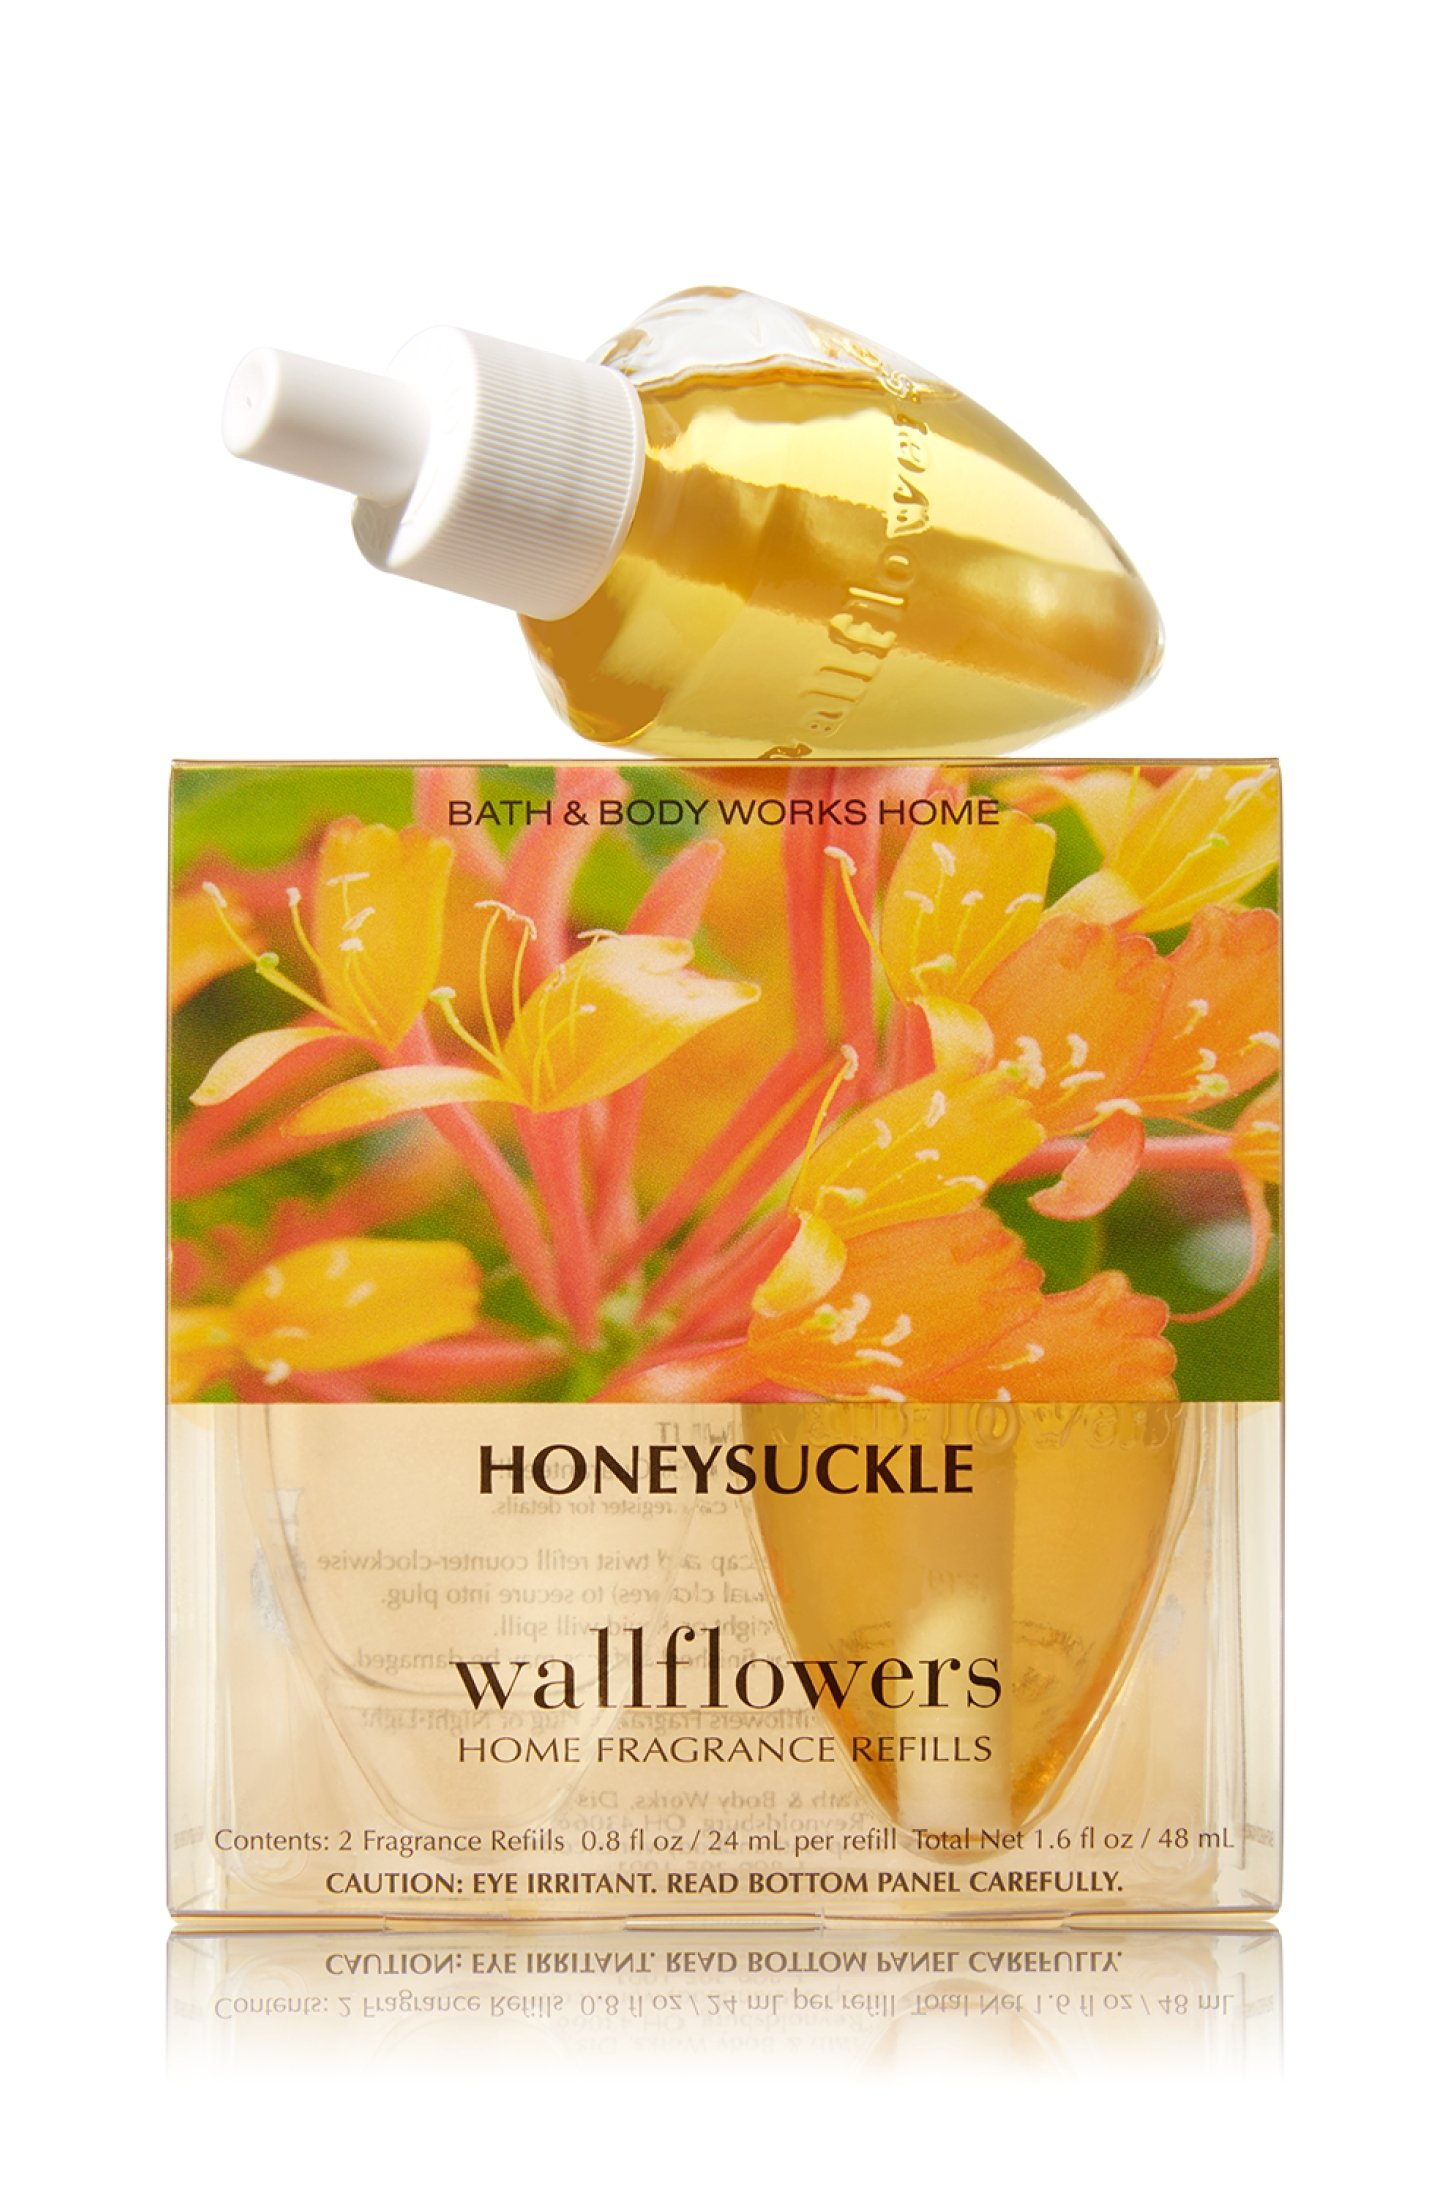 Bath and Body Works Wallflowers 2-Pack Refills, HoneySuckle, 1.6 Fl Oz Total